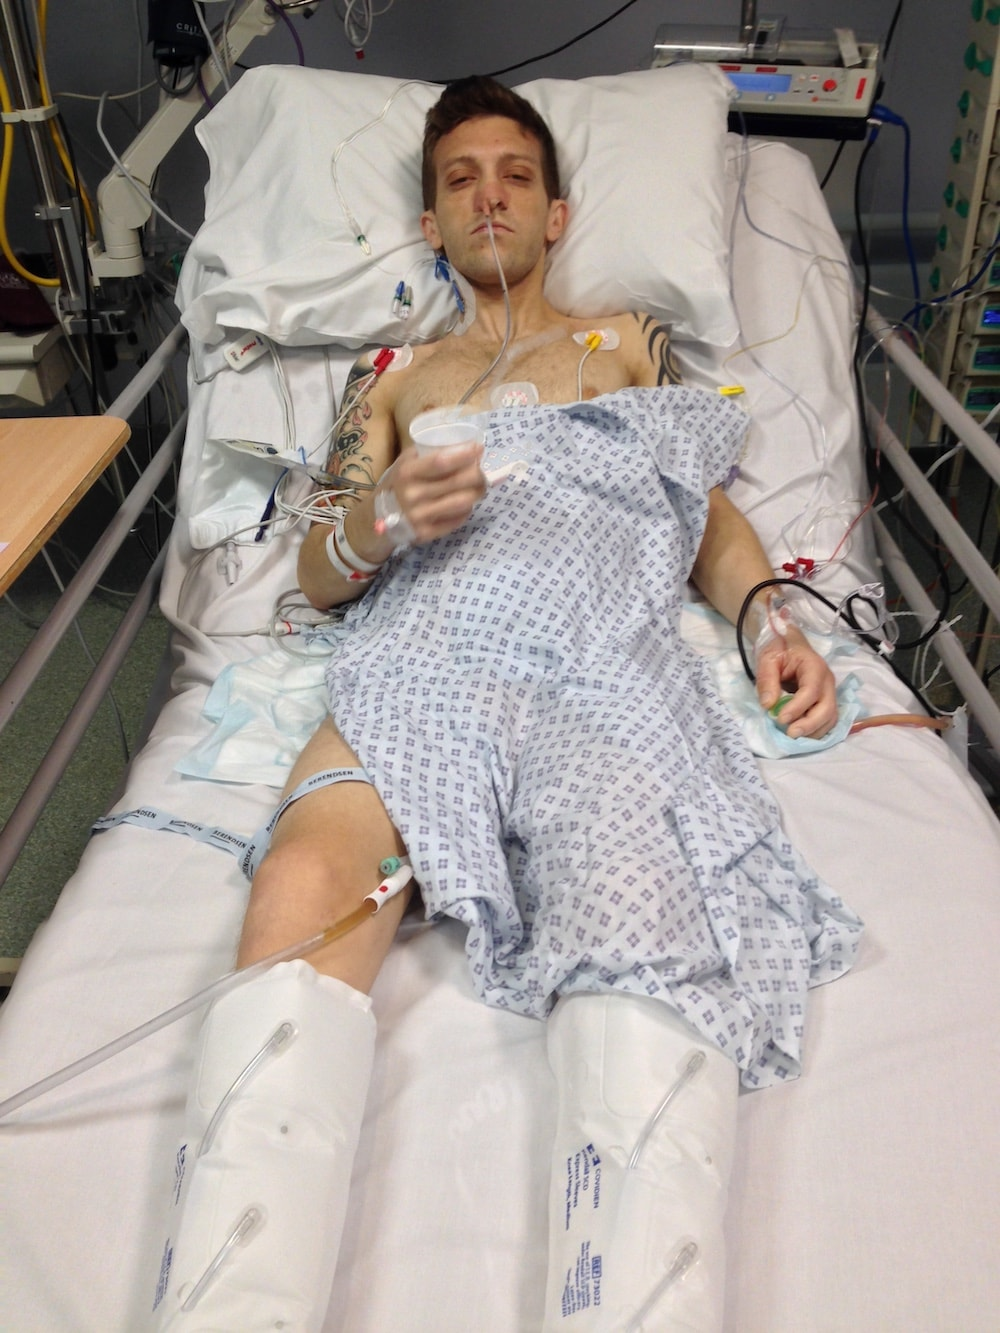 Rob in hospital